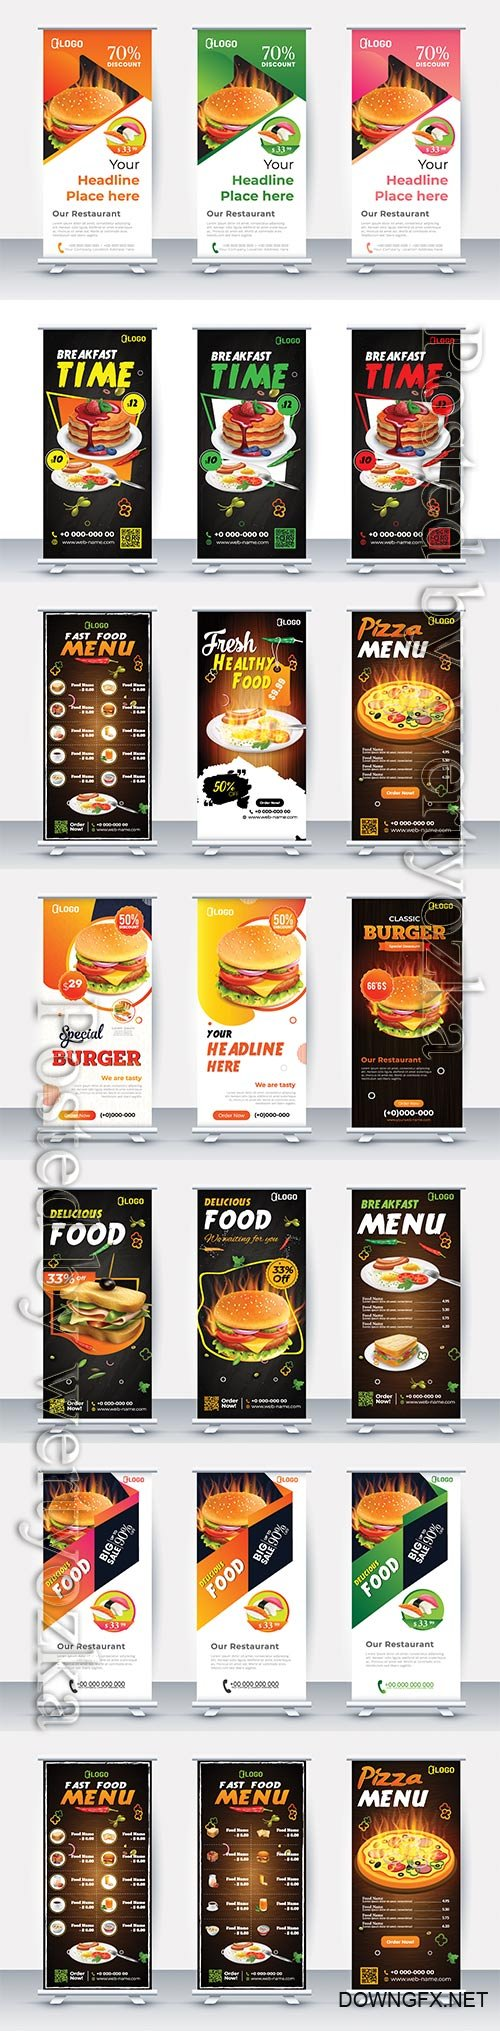 Fast food roll up banner restaurant menu template